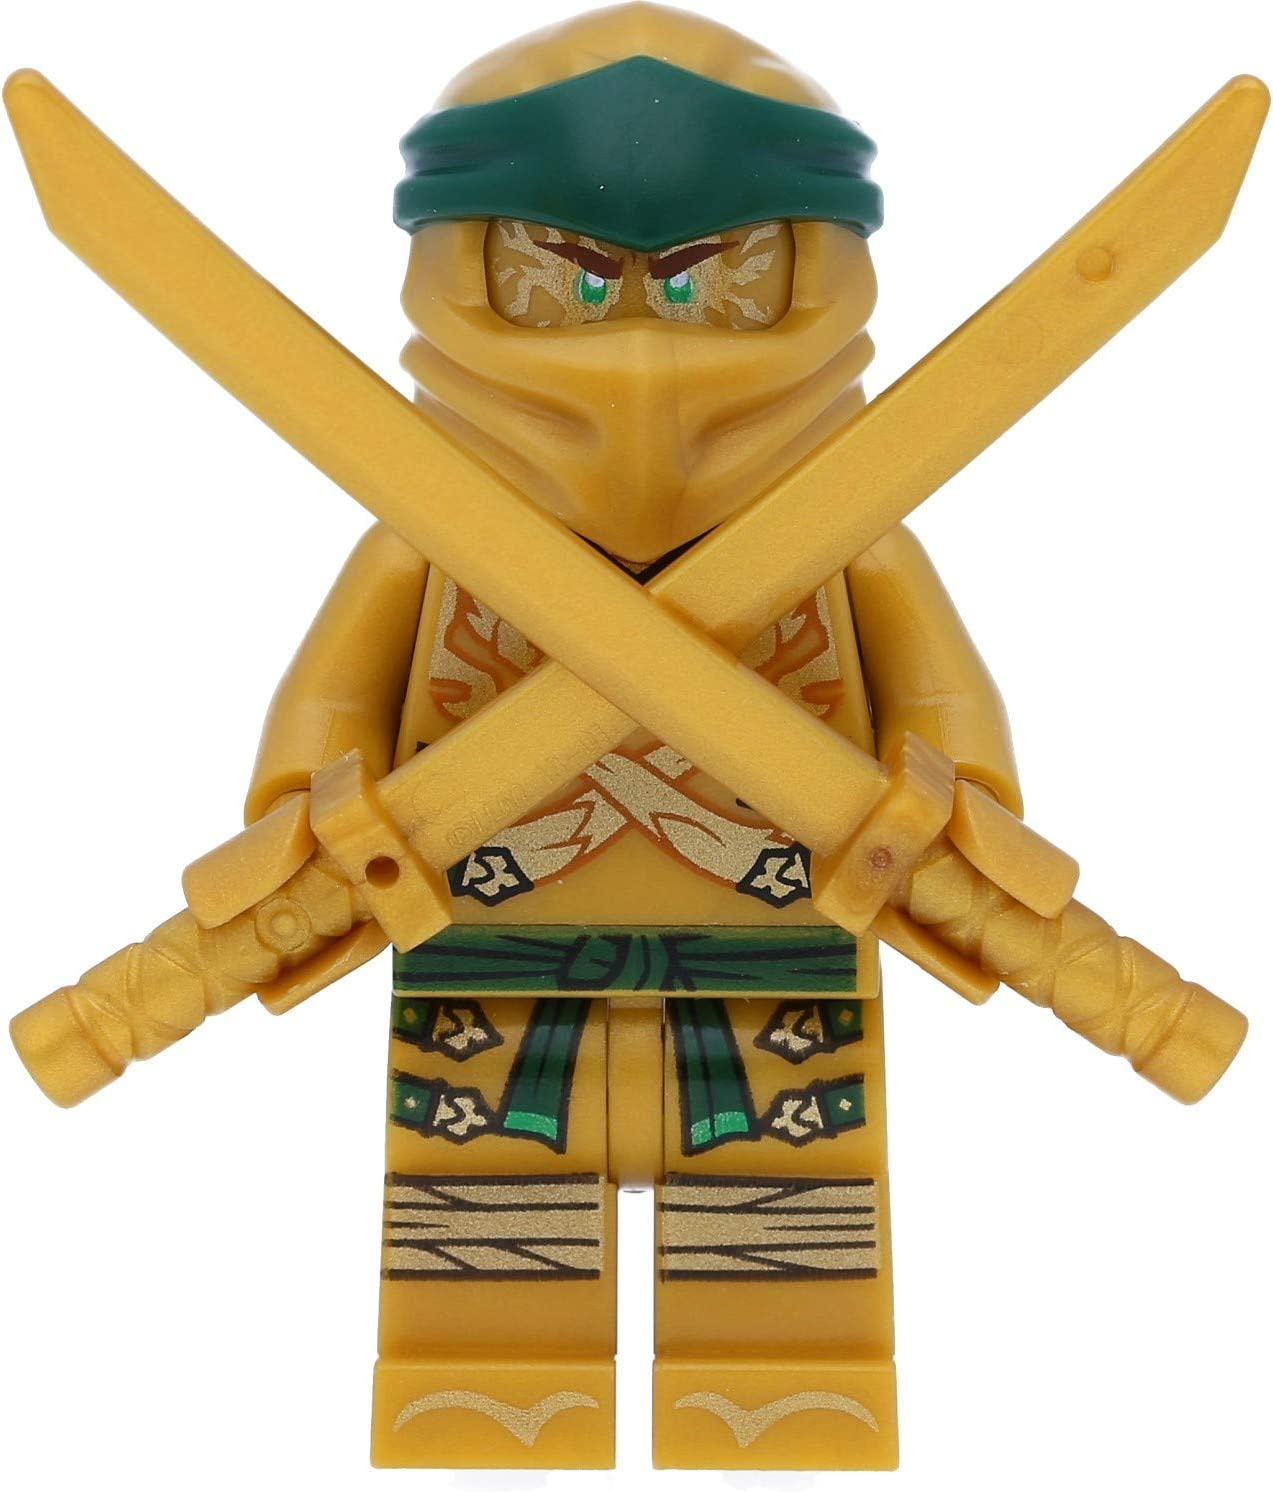 LEGO Ninjago Minifigure - Lloyd Garmadon Legacy (Gold Ninja with Sword)